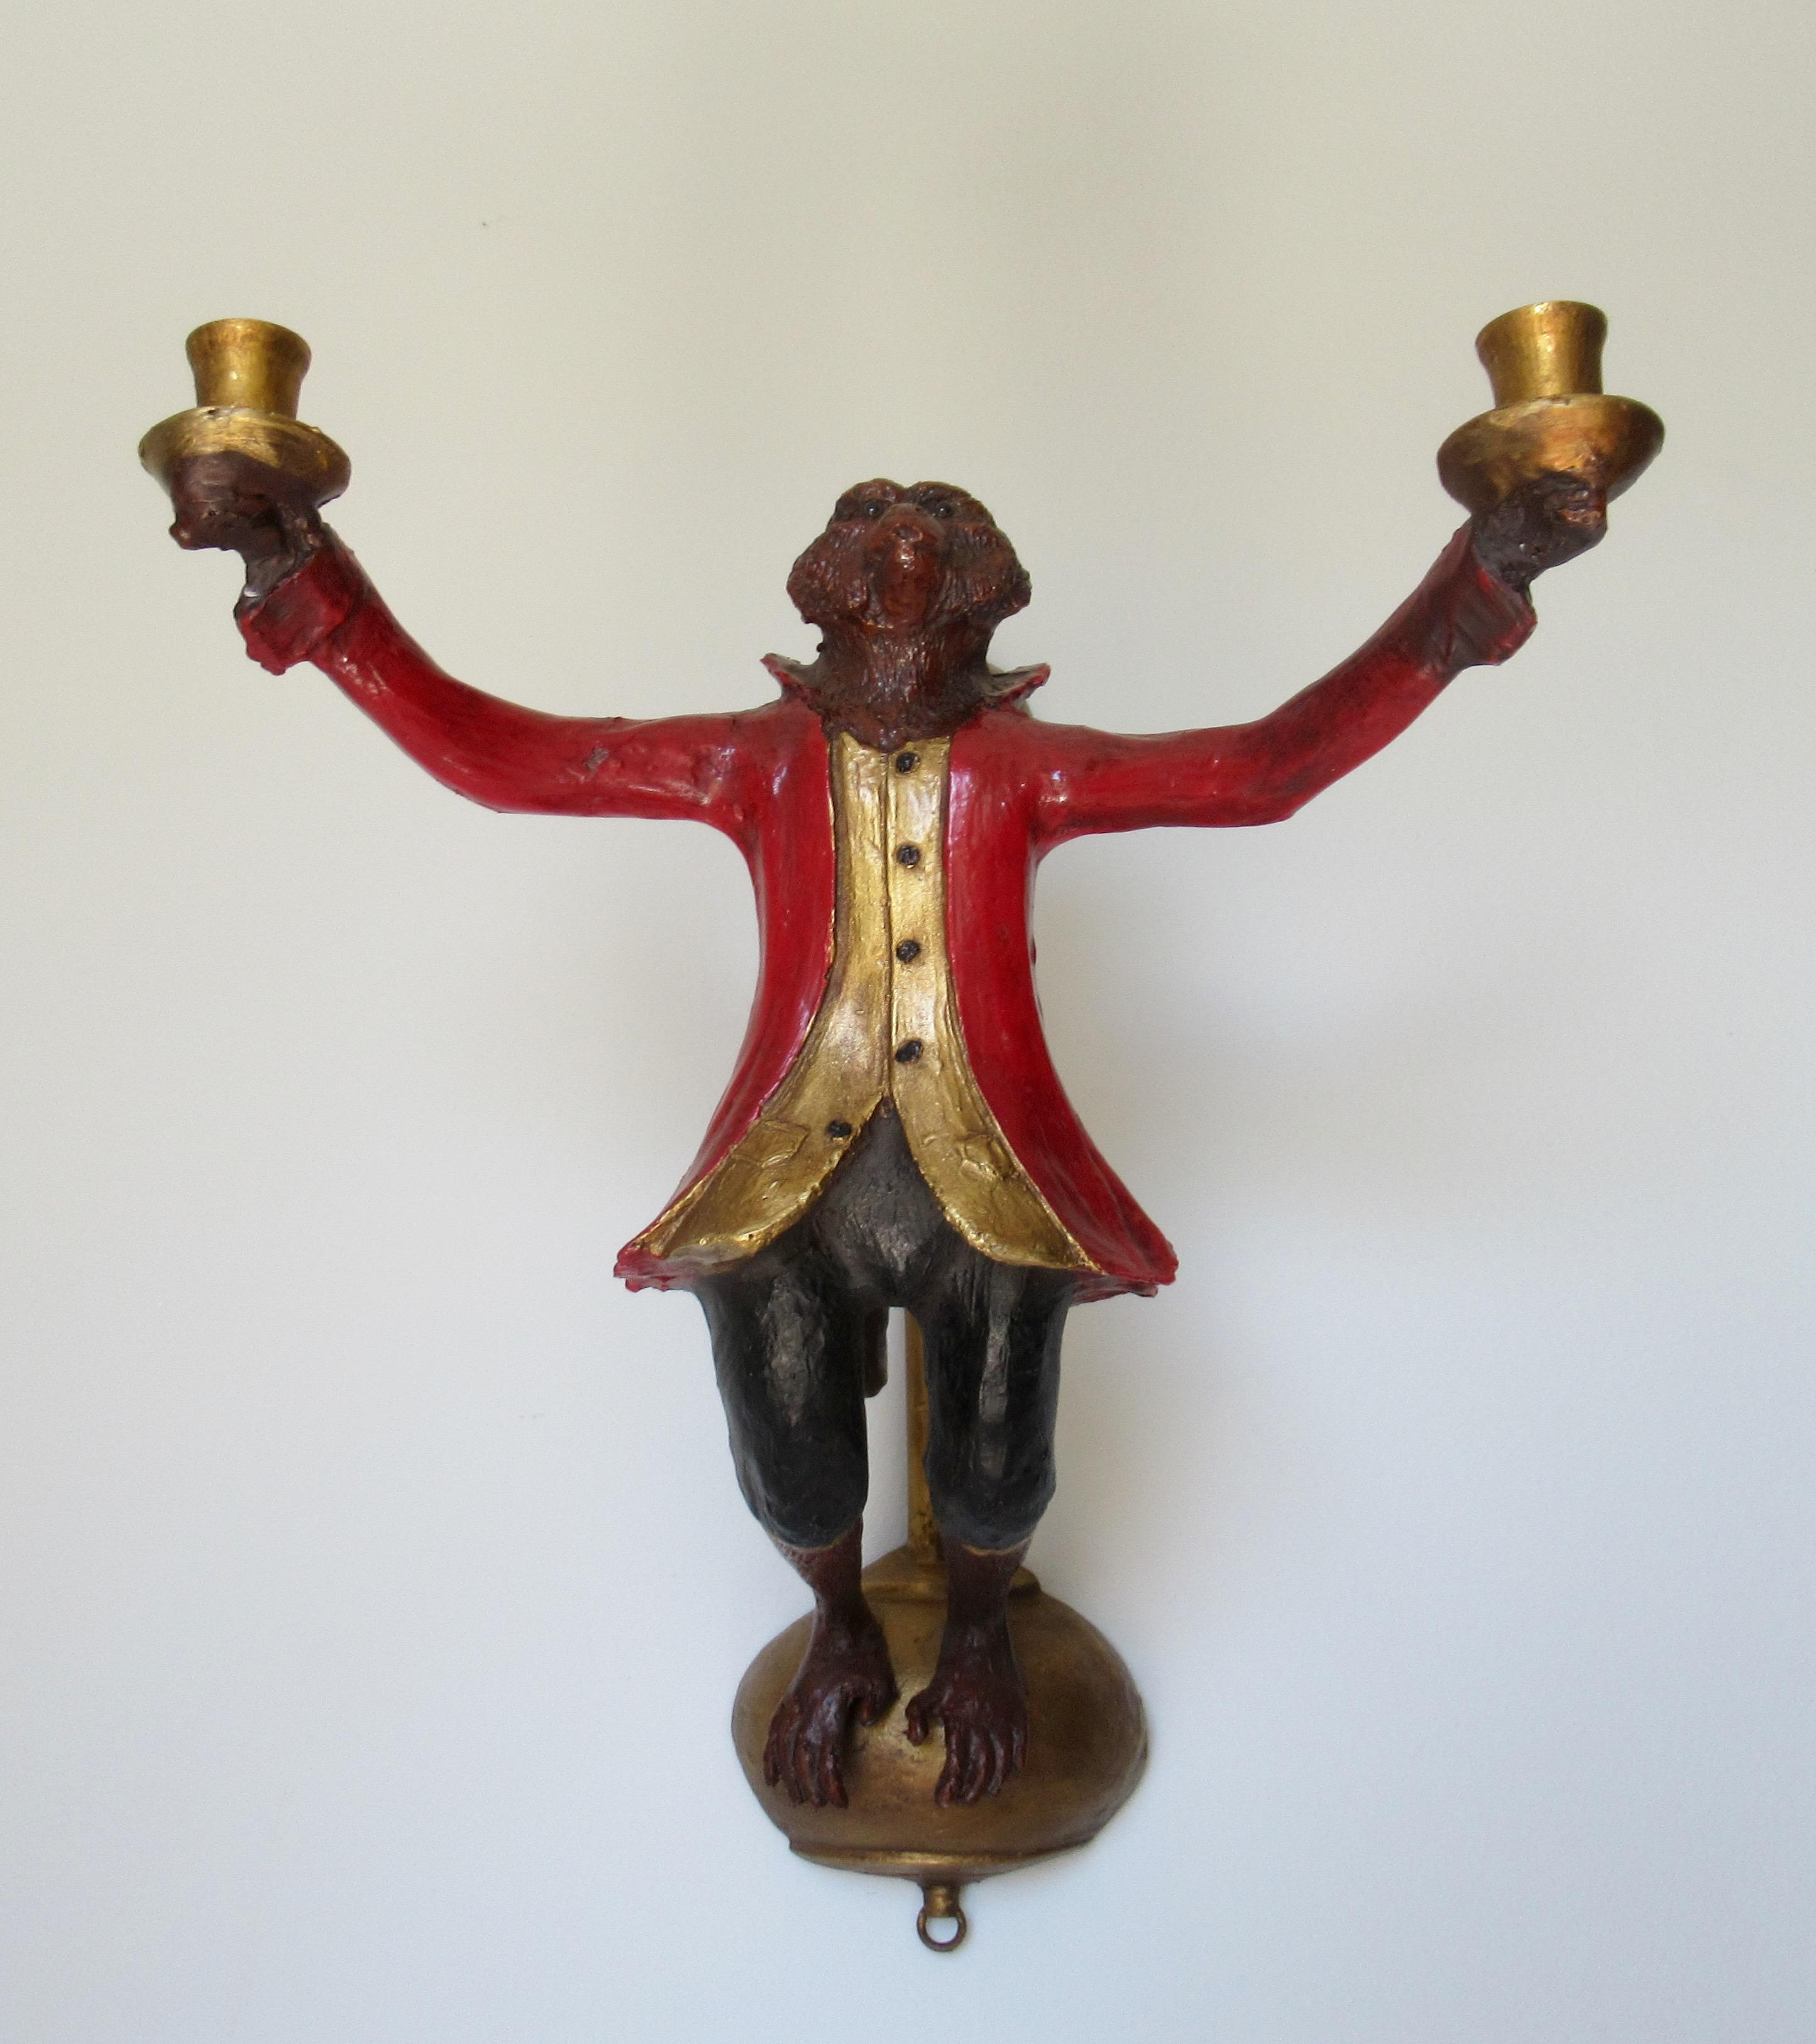 Vintage C.1988 Signed Rare Bill Huebbe Handcrafted Monkey ... on Vintage Wall Sconce Candle Holder Decorating Ideas id=69629